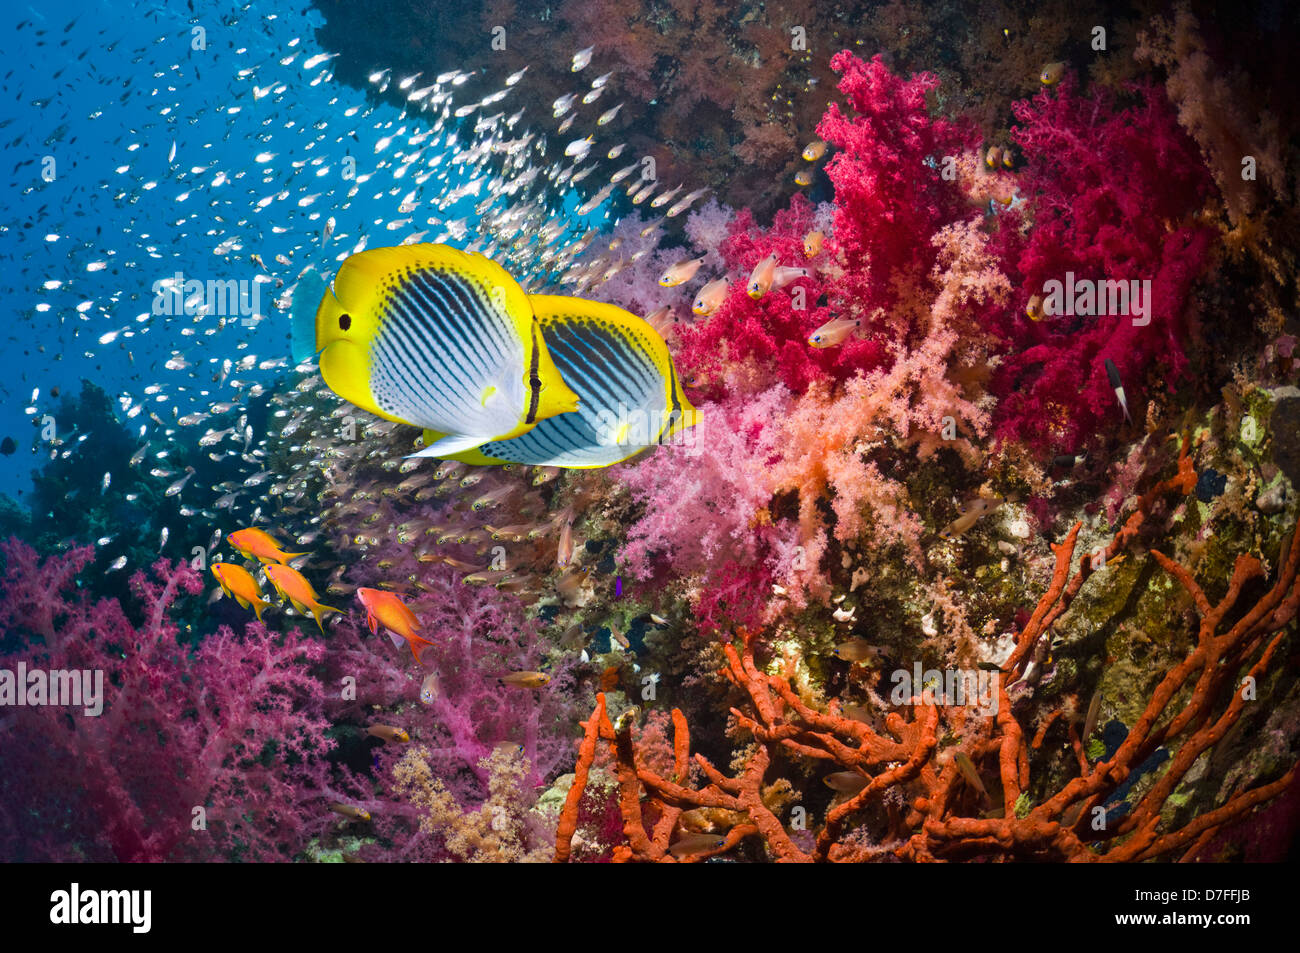 Blackback butterflyfish over coral reef with soft corals - Stock Image